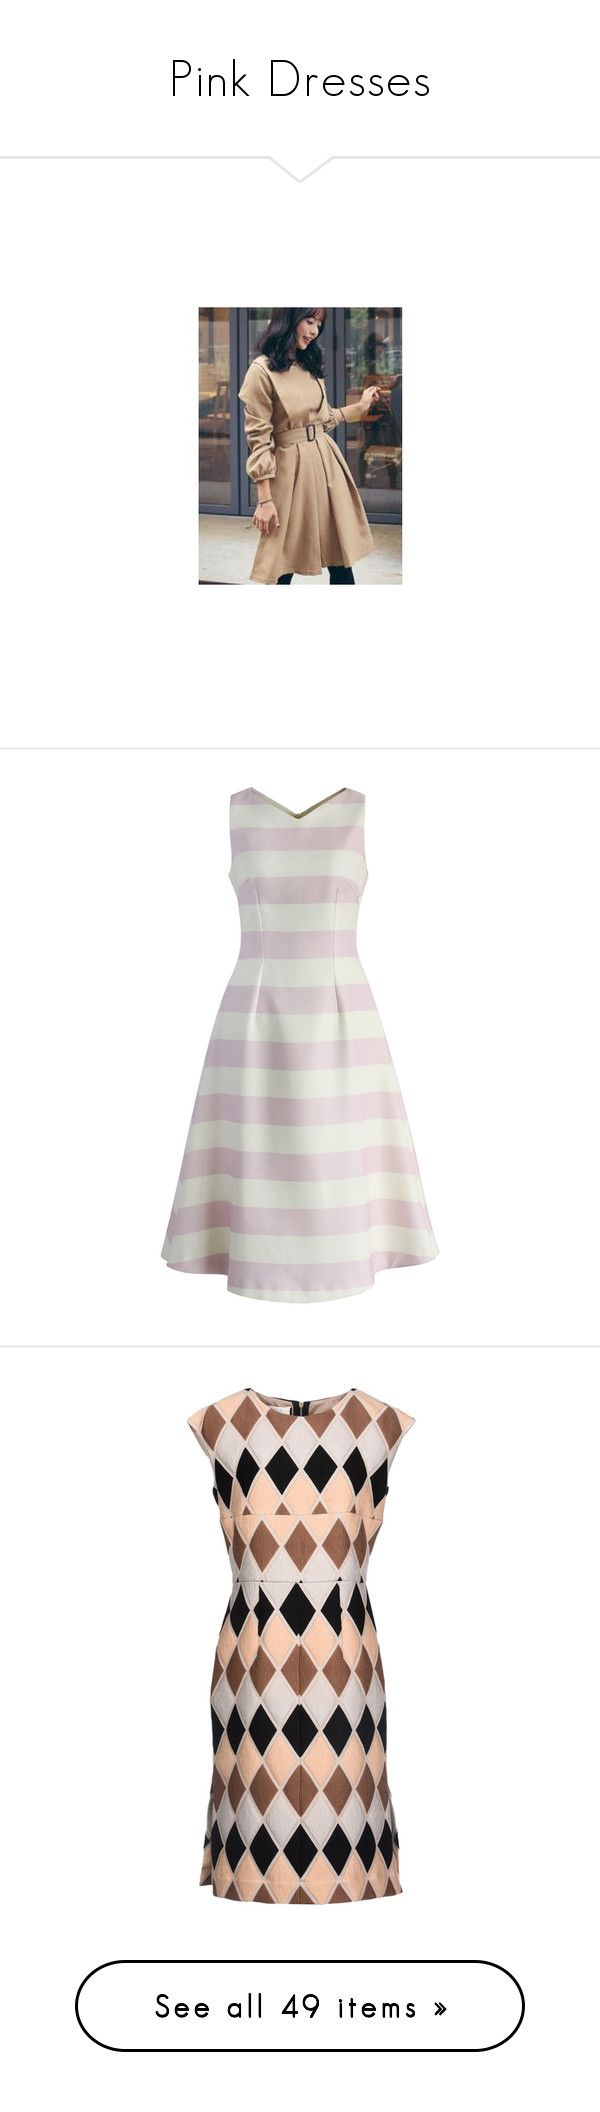 """""""Pink Dresses"""" by eternalfeatherfilm on Polyvore featuring dresses, women, pleated sleeve dress, layered dress, sleeved dresses, embellished dress, beige dress, chicwish, pink and fit-and-flare midi dresses"""